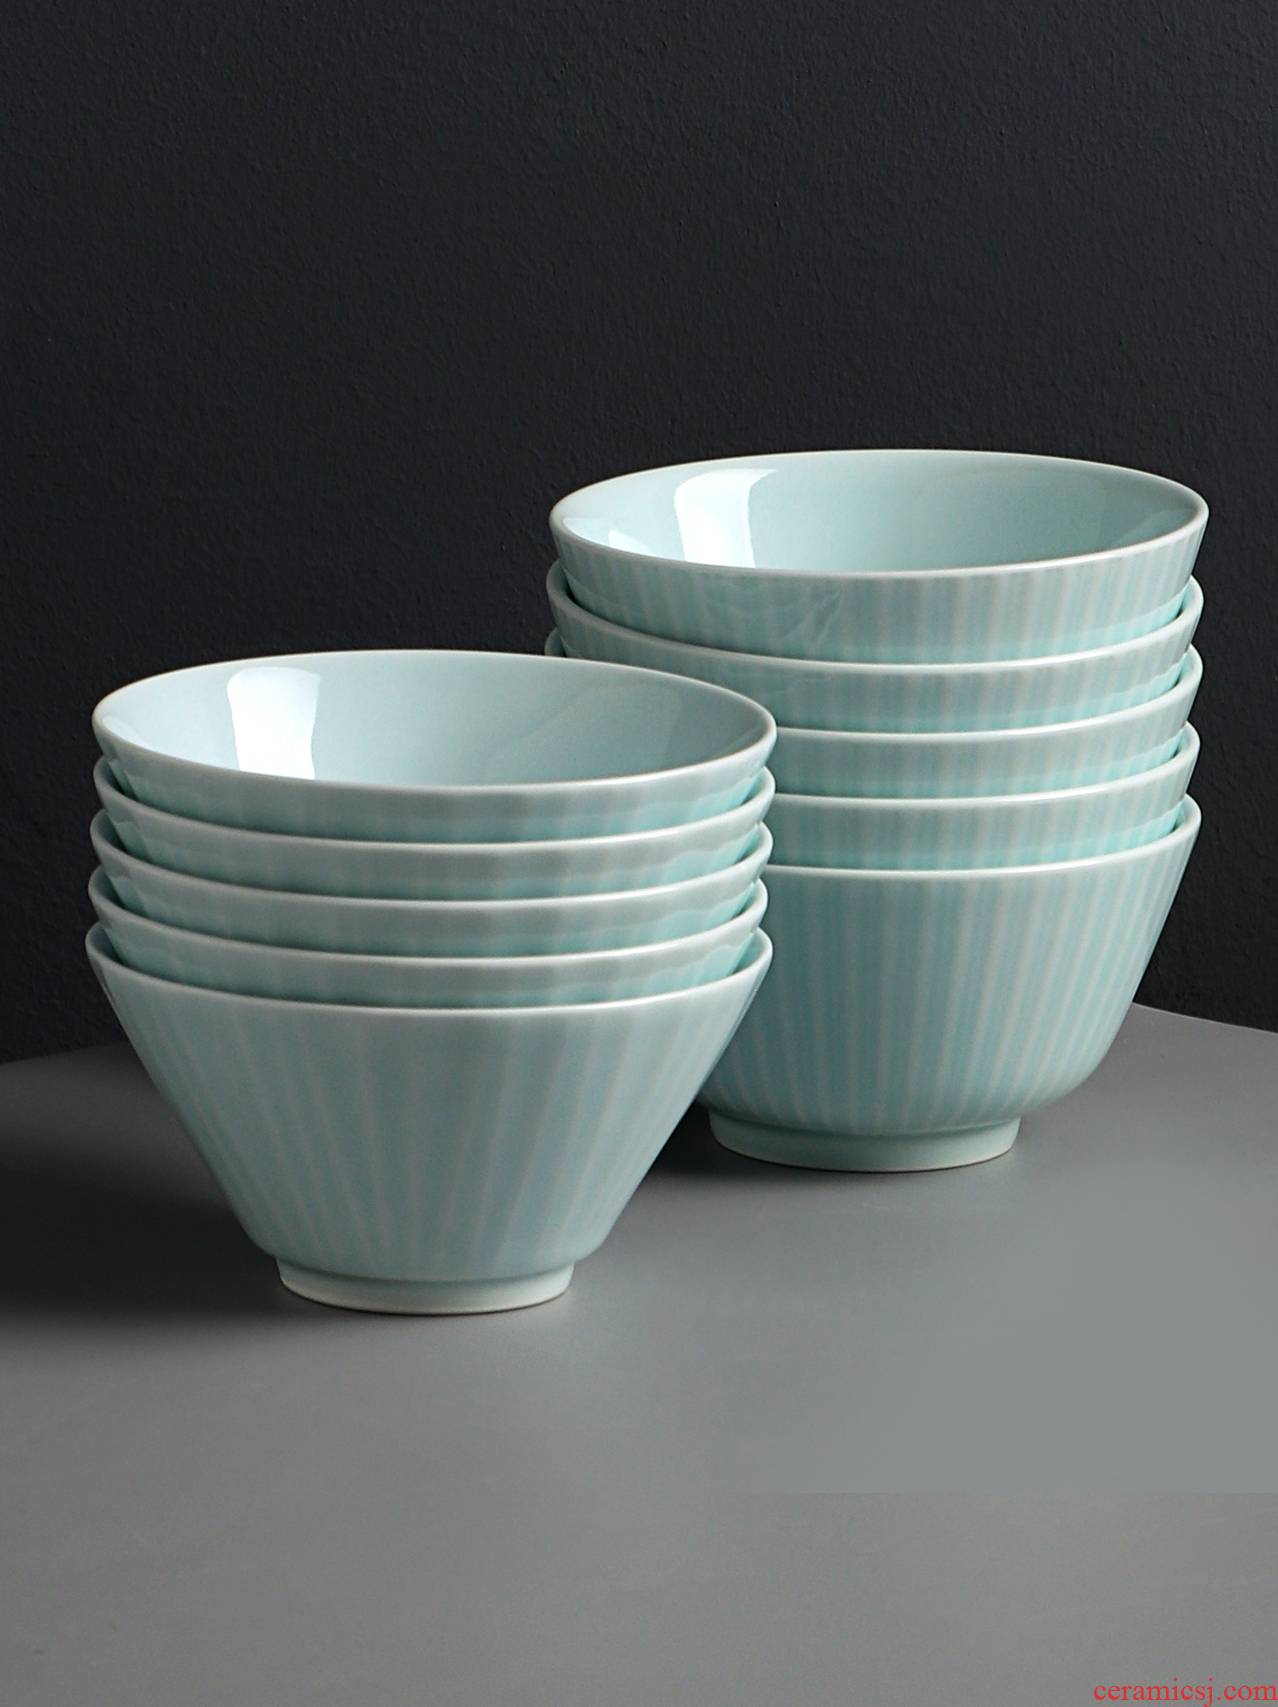 Jingdezhen shadow celadon bowls of Chinese style household tableware to eat bread and butter rice bowls a single creative ceramic bowls hat to bowl